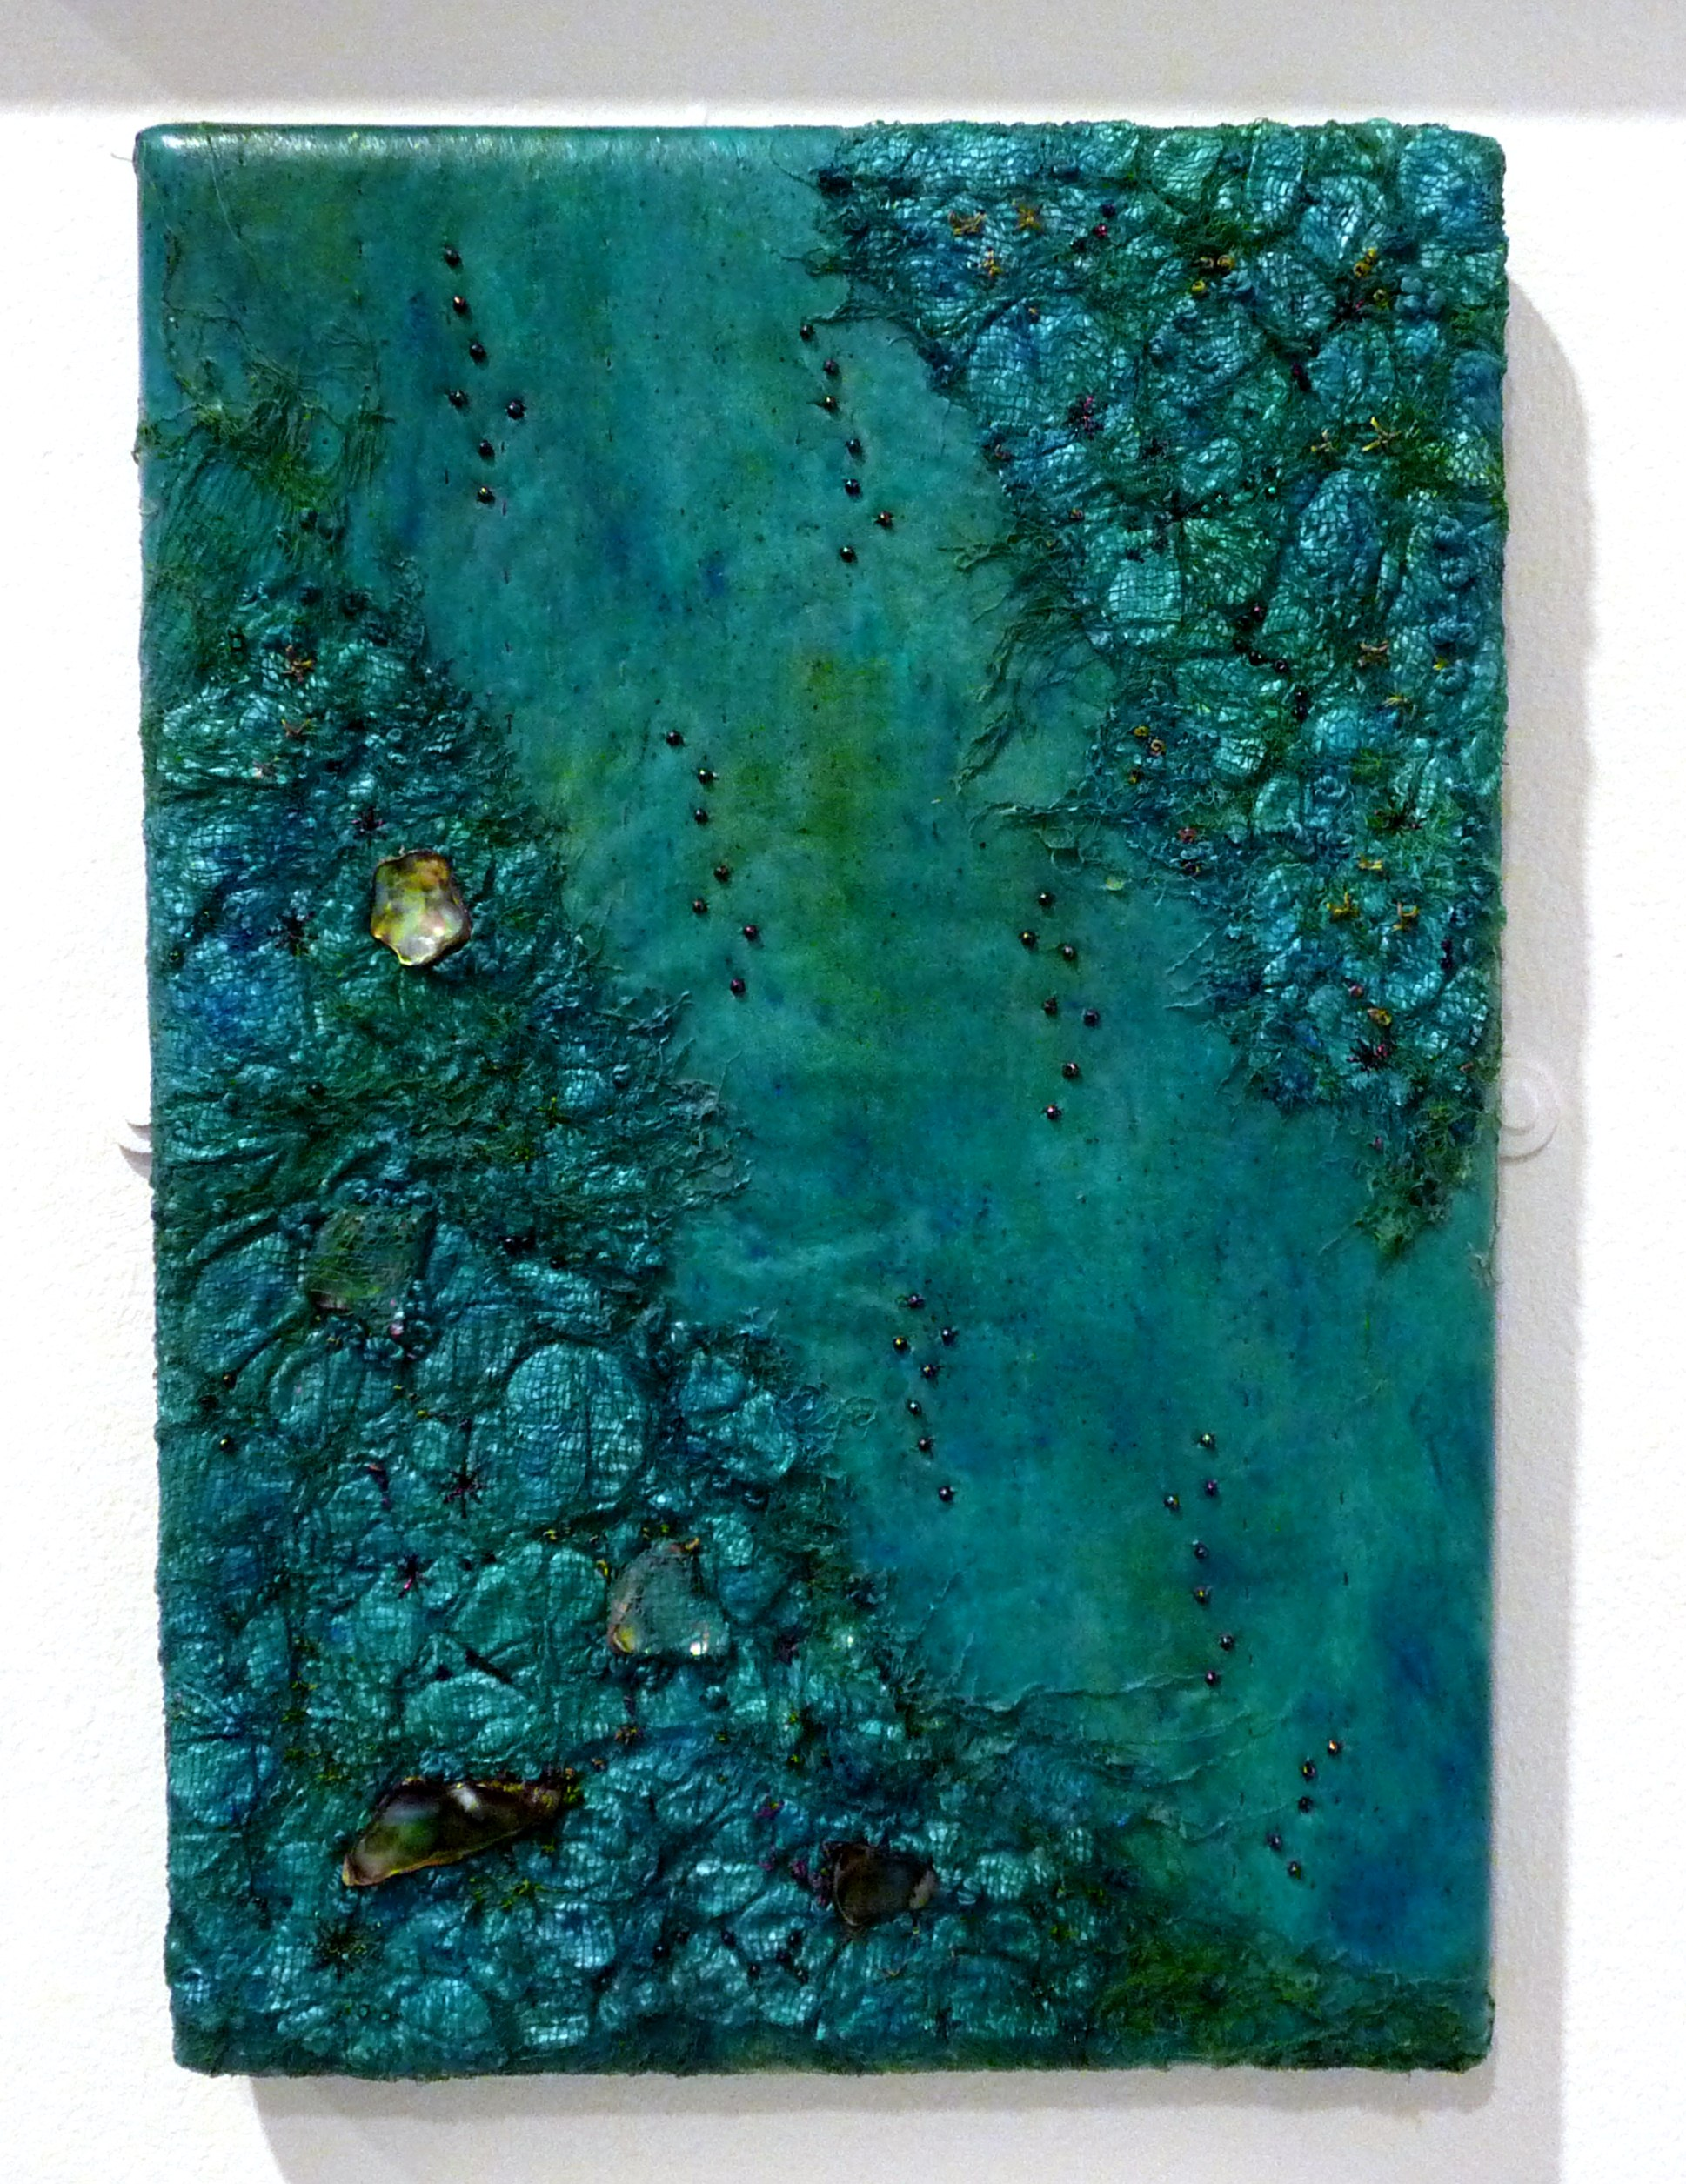 PEARLESCENT LUSTRE by Pauling Bowling, mixed media